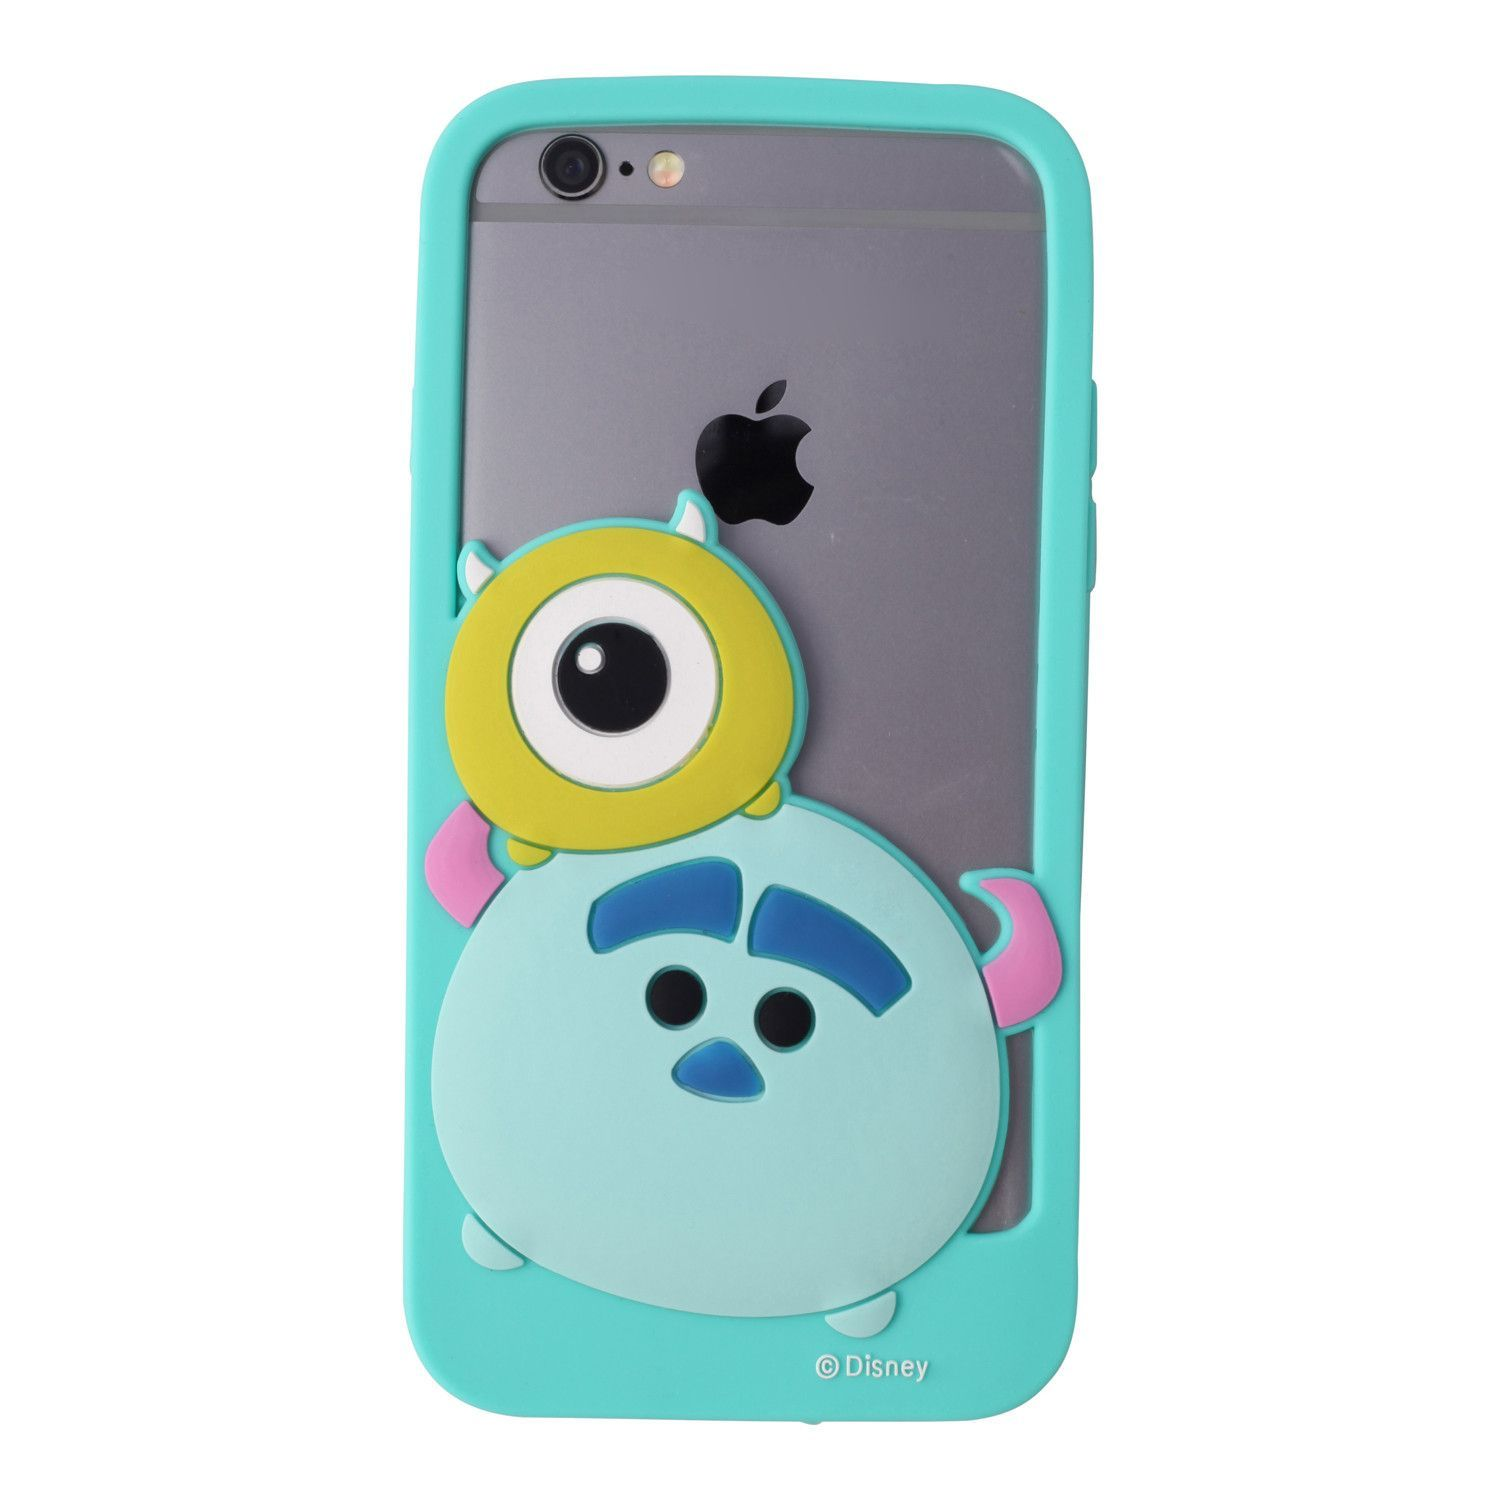 This Soft And Flexible Silicone Bumper Phone Case Features Mike And Sulley Stacked On Each Other In Classic Tsum Tsum Style With Images Cute Phone Cases Disney Phone Cases